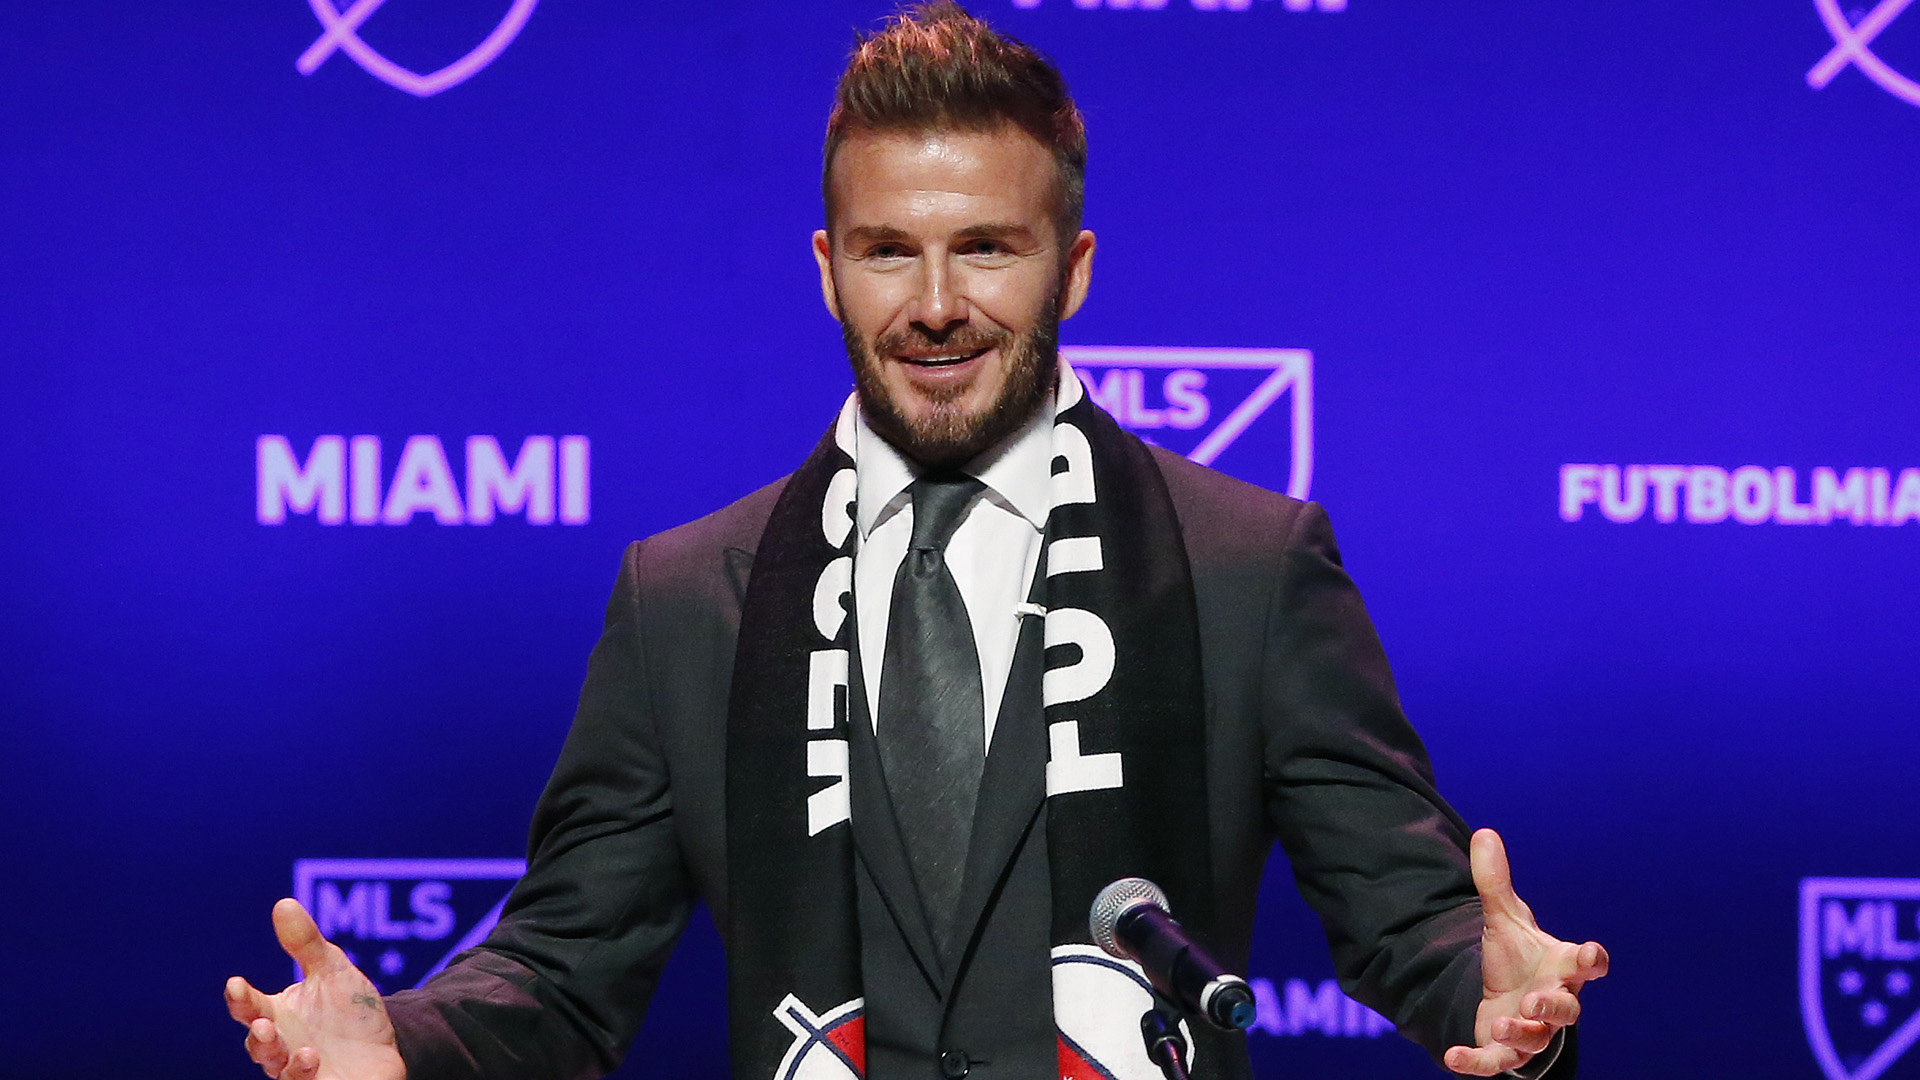 What is the MLS salary cap & how much are U.S. soccer players paid?